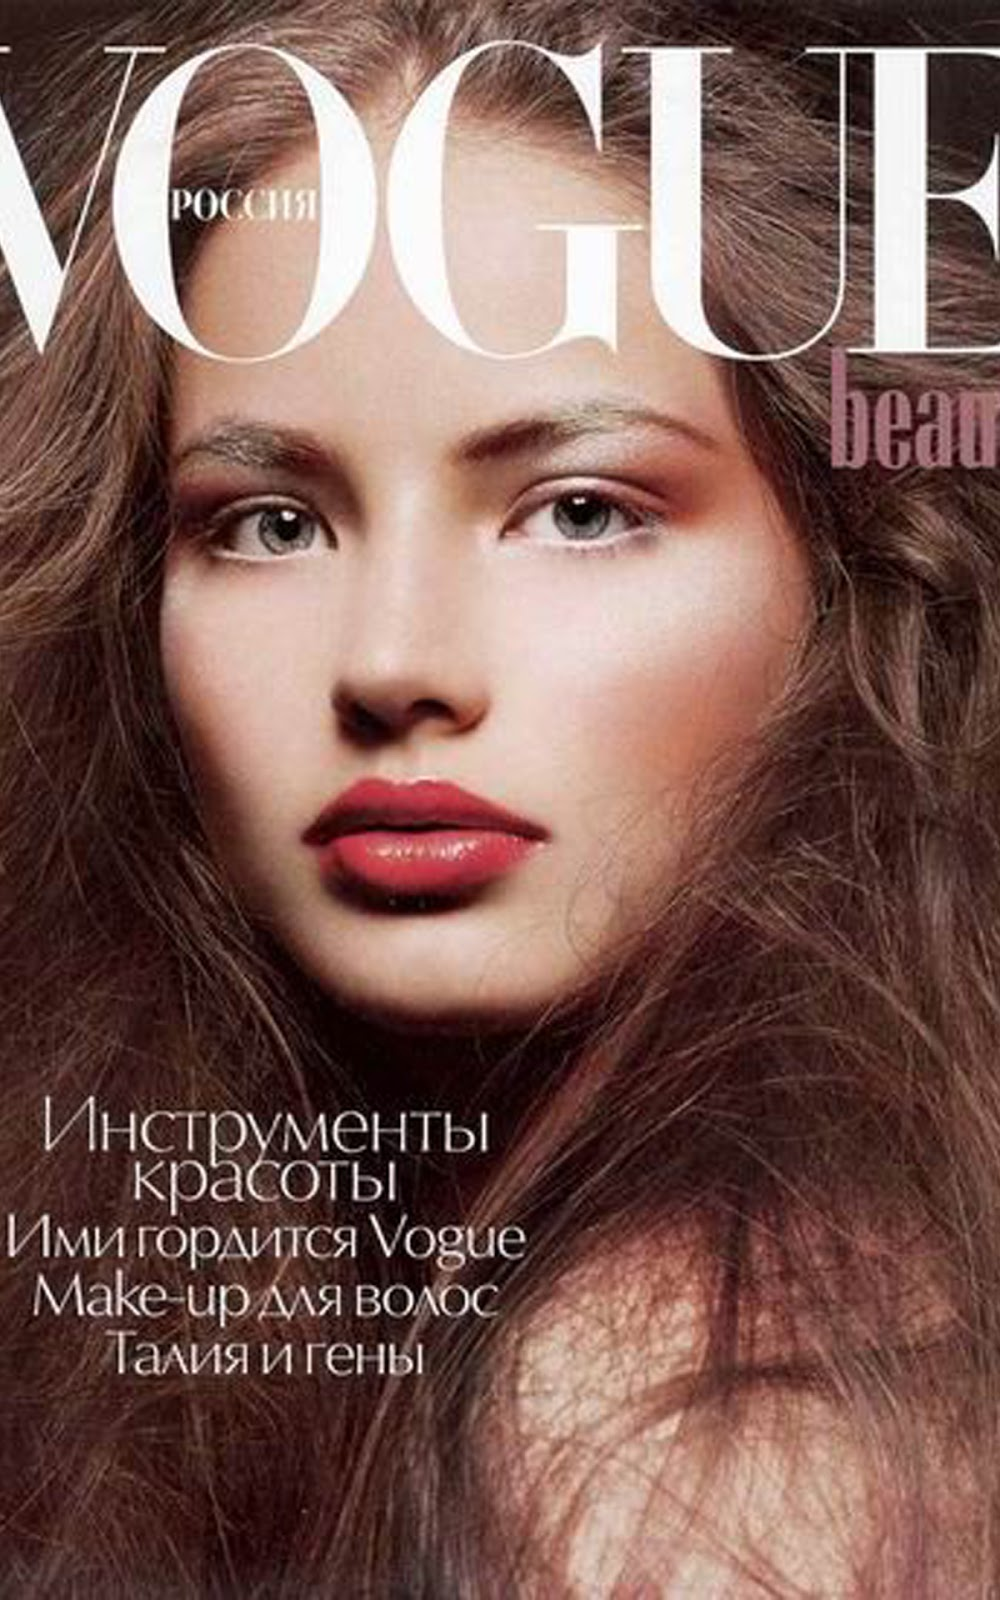 Ruslana Korshunova Model Ruslana Sergeyevna Korshunova was a Kazakhstani model of Russian descent. She established herself as a rising figure in the fashion industry by posing for magazines including Vogue and designers such as Vera Wang and Nina Ricci. Wikipedia Born: July 2, 1987, Almaty, Kazakhstan Died: June 28, 2008, Manhattan, New York City, New York, United States Height: 1.73 m Resting place: Khovanskoye Cemetery, Moscow